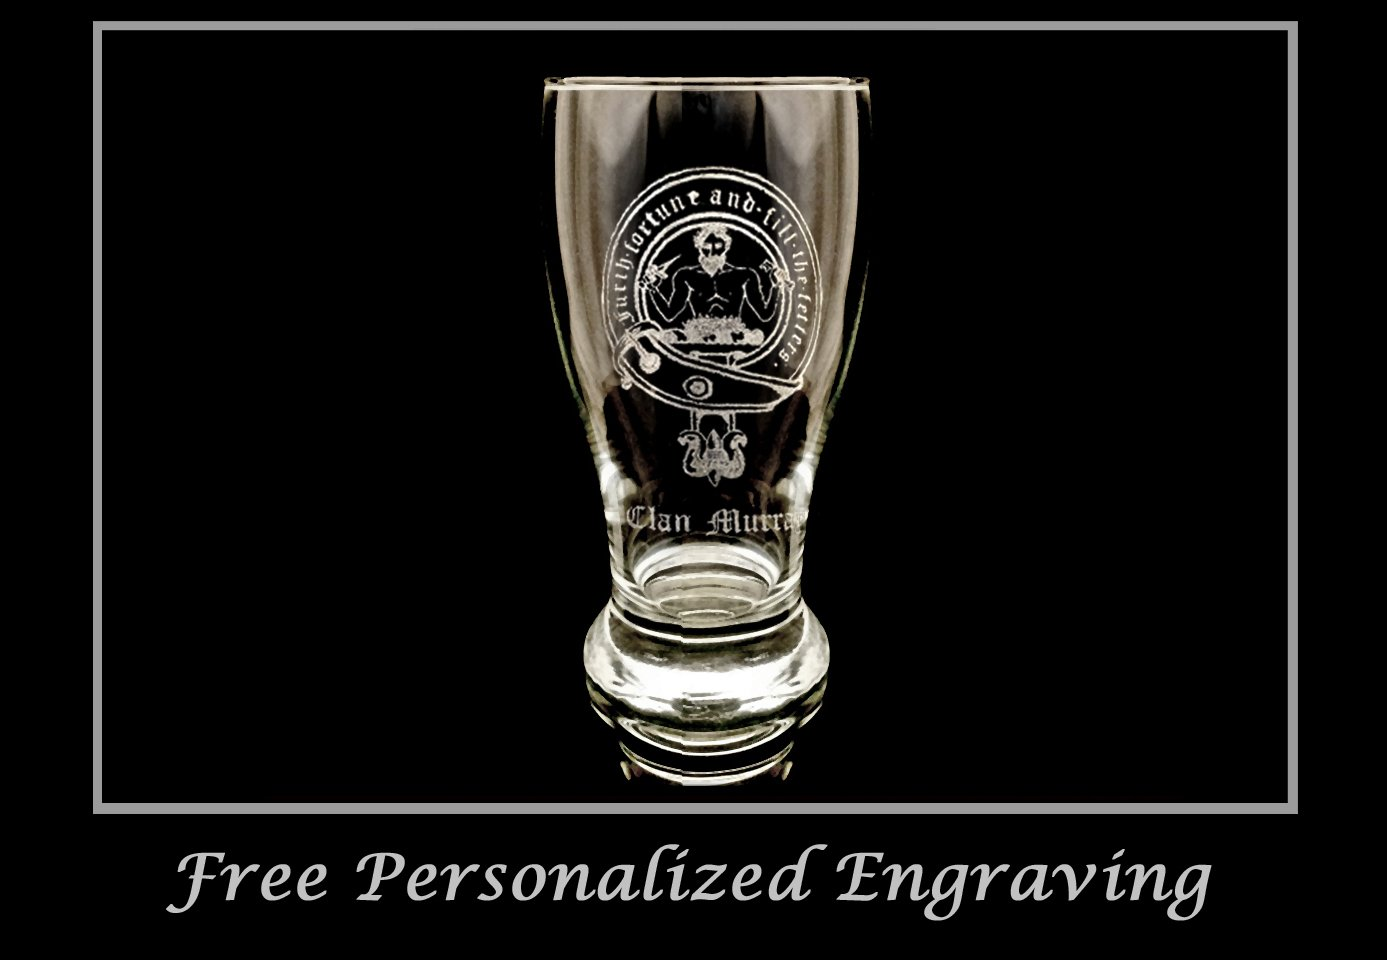 Clan Murray Scottish Crest Pint Glass Set of 4 - Free Personalized Engraving, Family Crest, Pub Glass, Beer Glass, Custom Beer Glass by LyonCraft (Image #2)